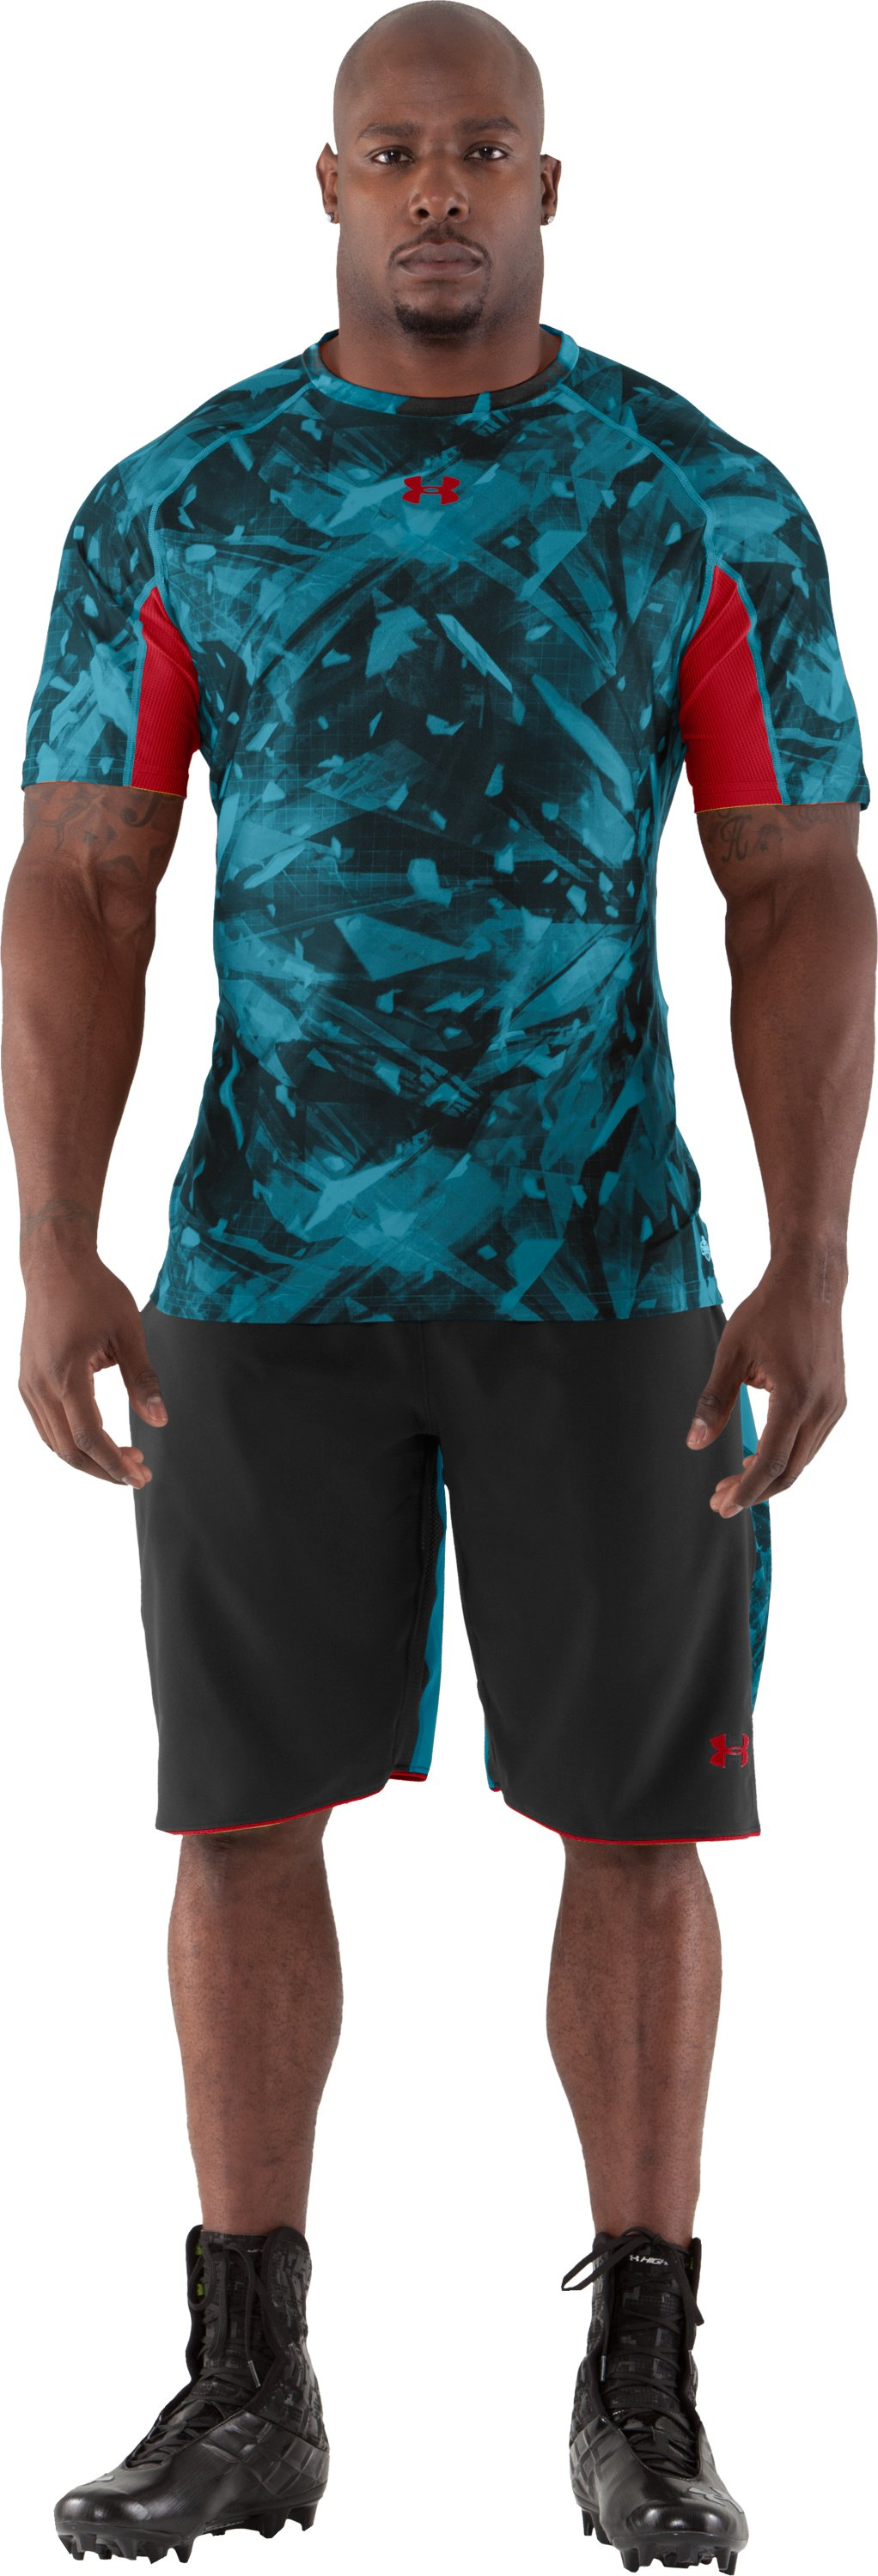 Men's NFL Combine Authentic Fitted Short Sleeve, Capri